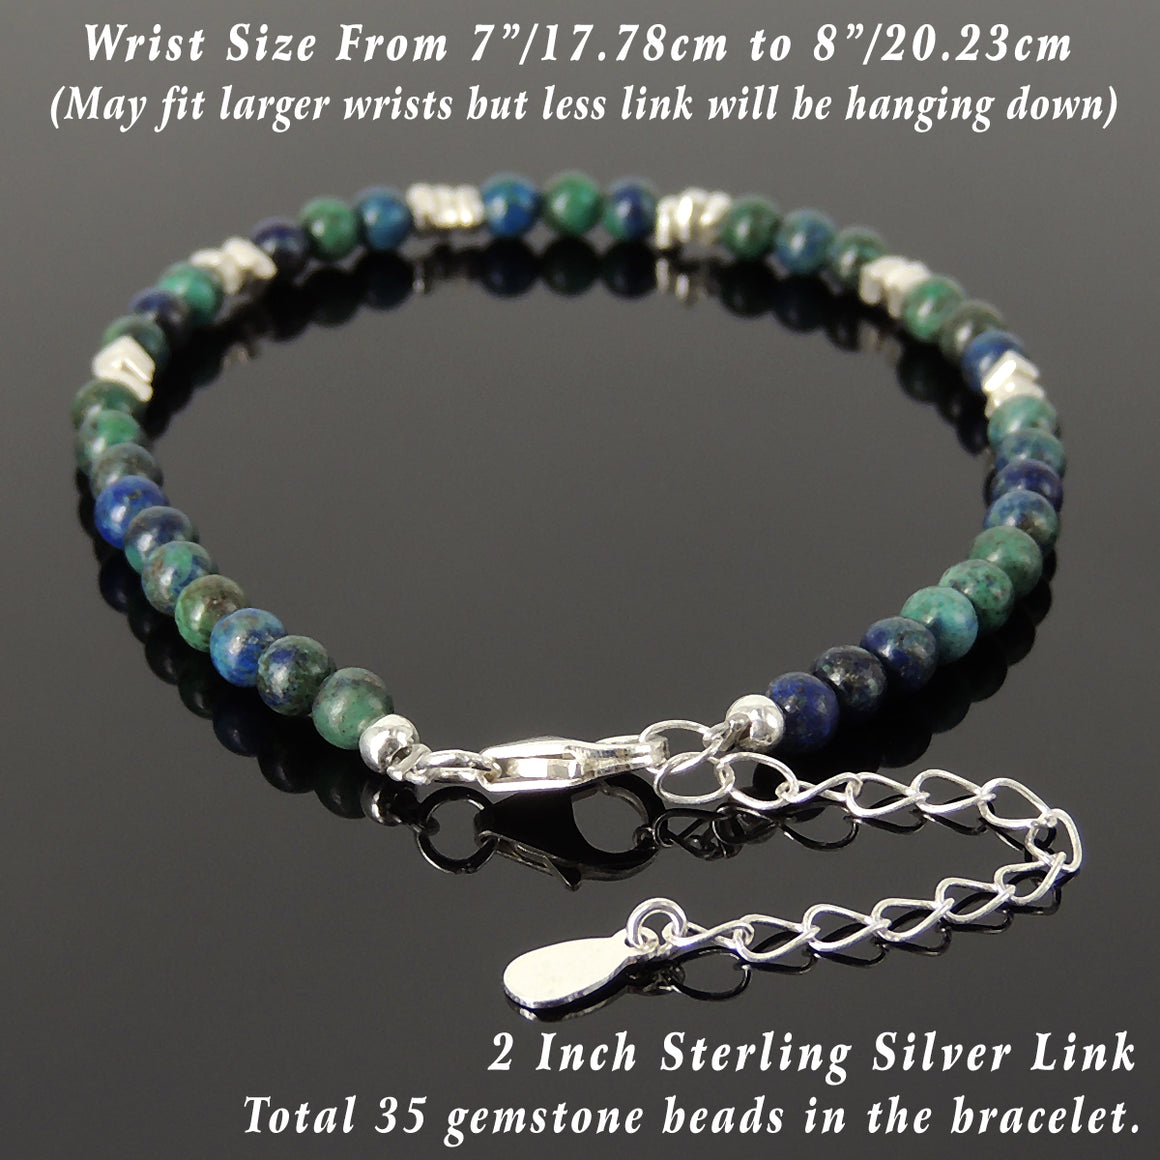 4mm Mixed Chrysocolla Lapis Healing Gemstone Bracelet with S925 Sterling Silver Nugget Beads, Chain, & Clasp - Handmade by Gem & Silver BR1272